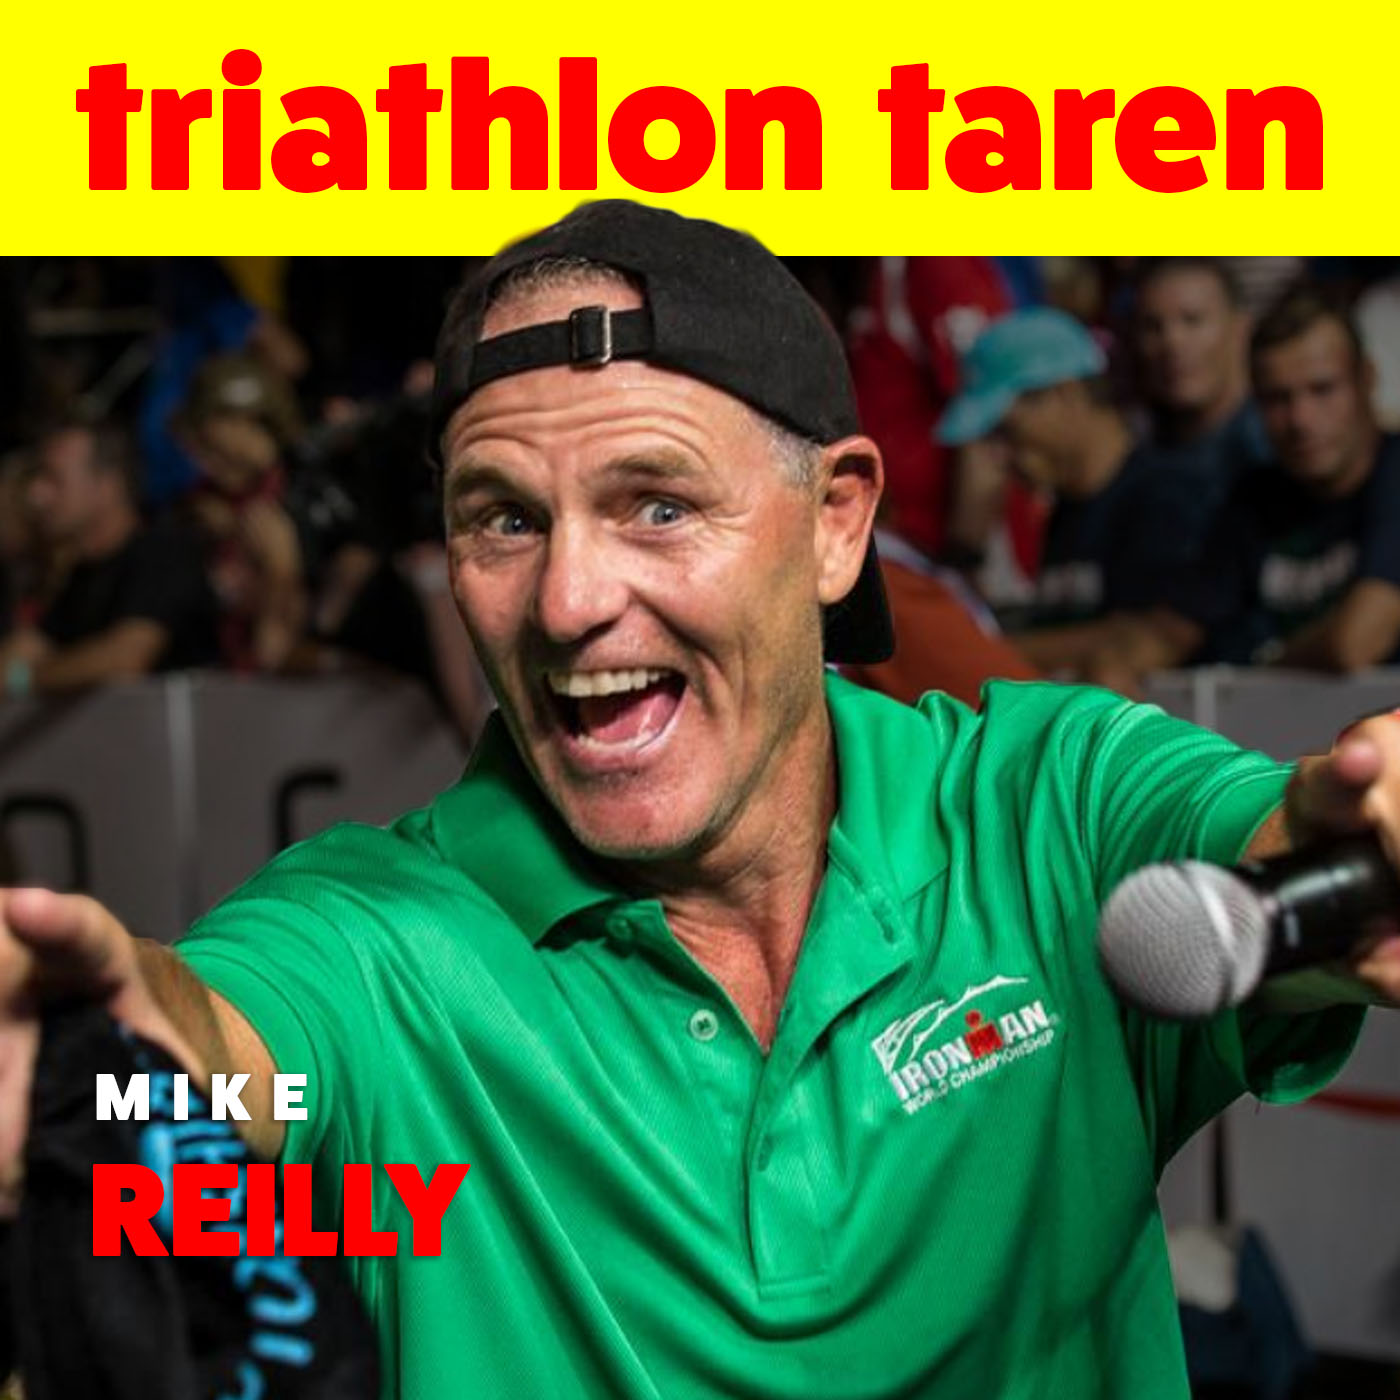 Triathlon inspiration from the voice of Ironman Mike Reilly | Finding My Voice